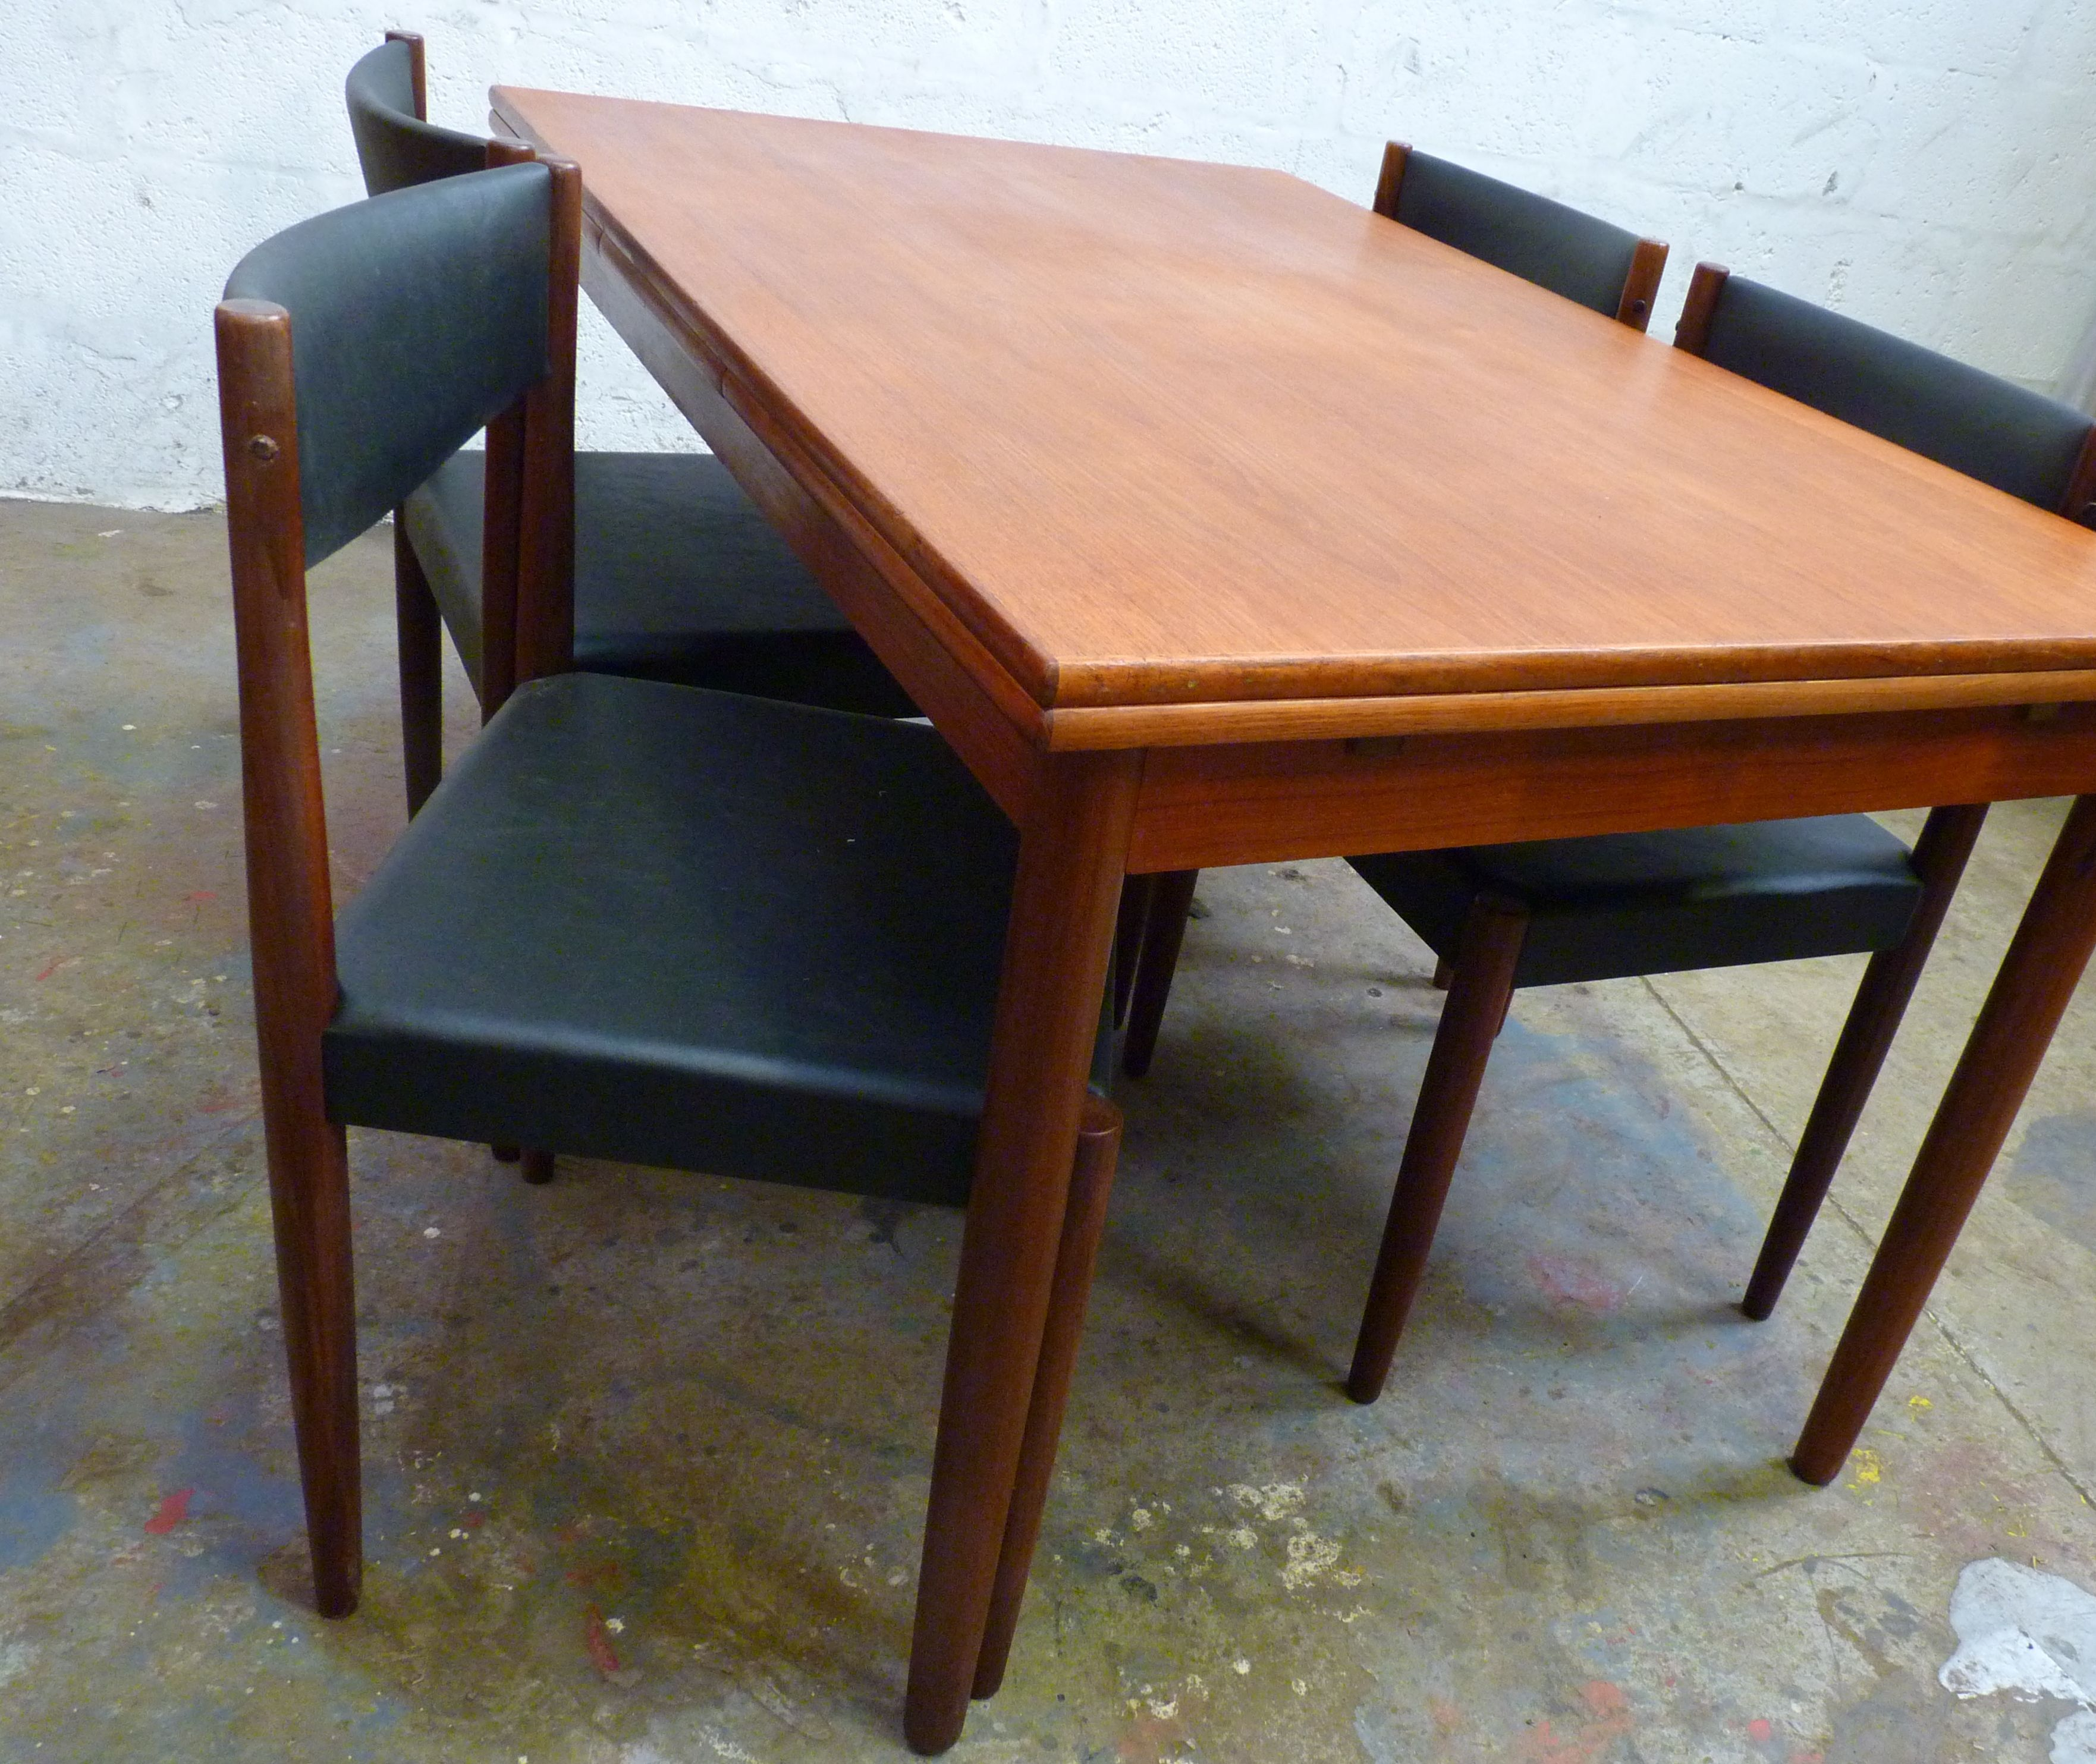 1960s Danish Table Frem Rojle Poul Volther Chairs Danish Table Apartment Dining Table